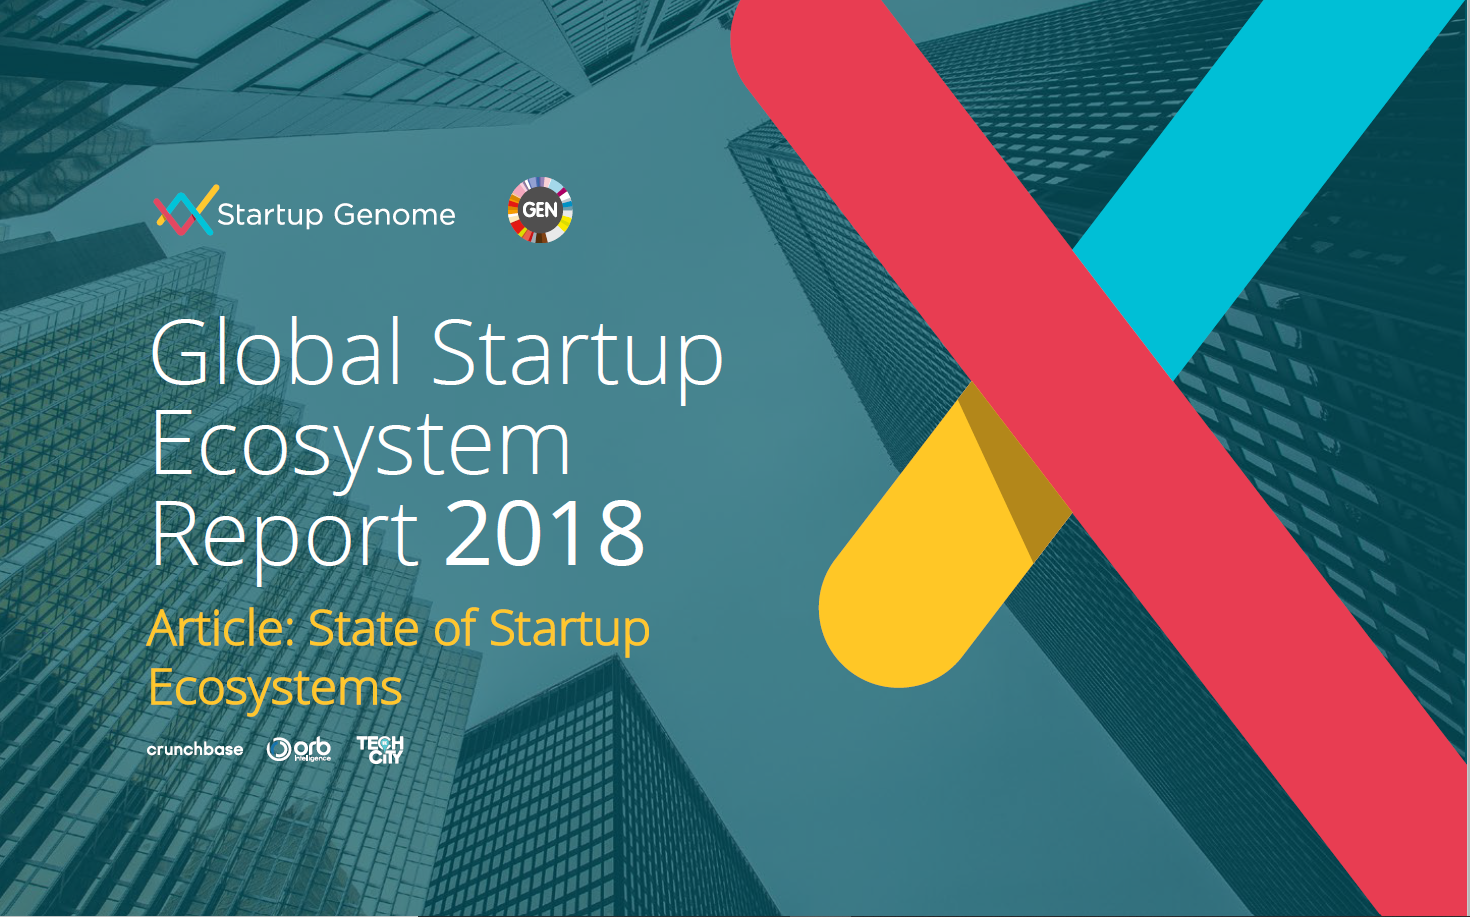 State of Startup Ecosystems 2018